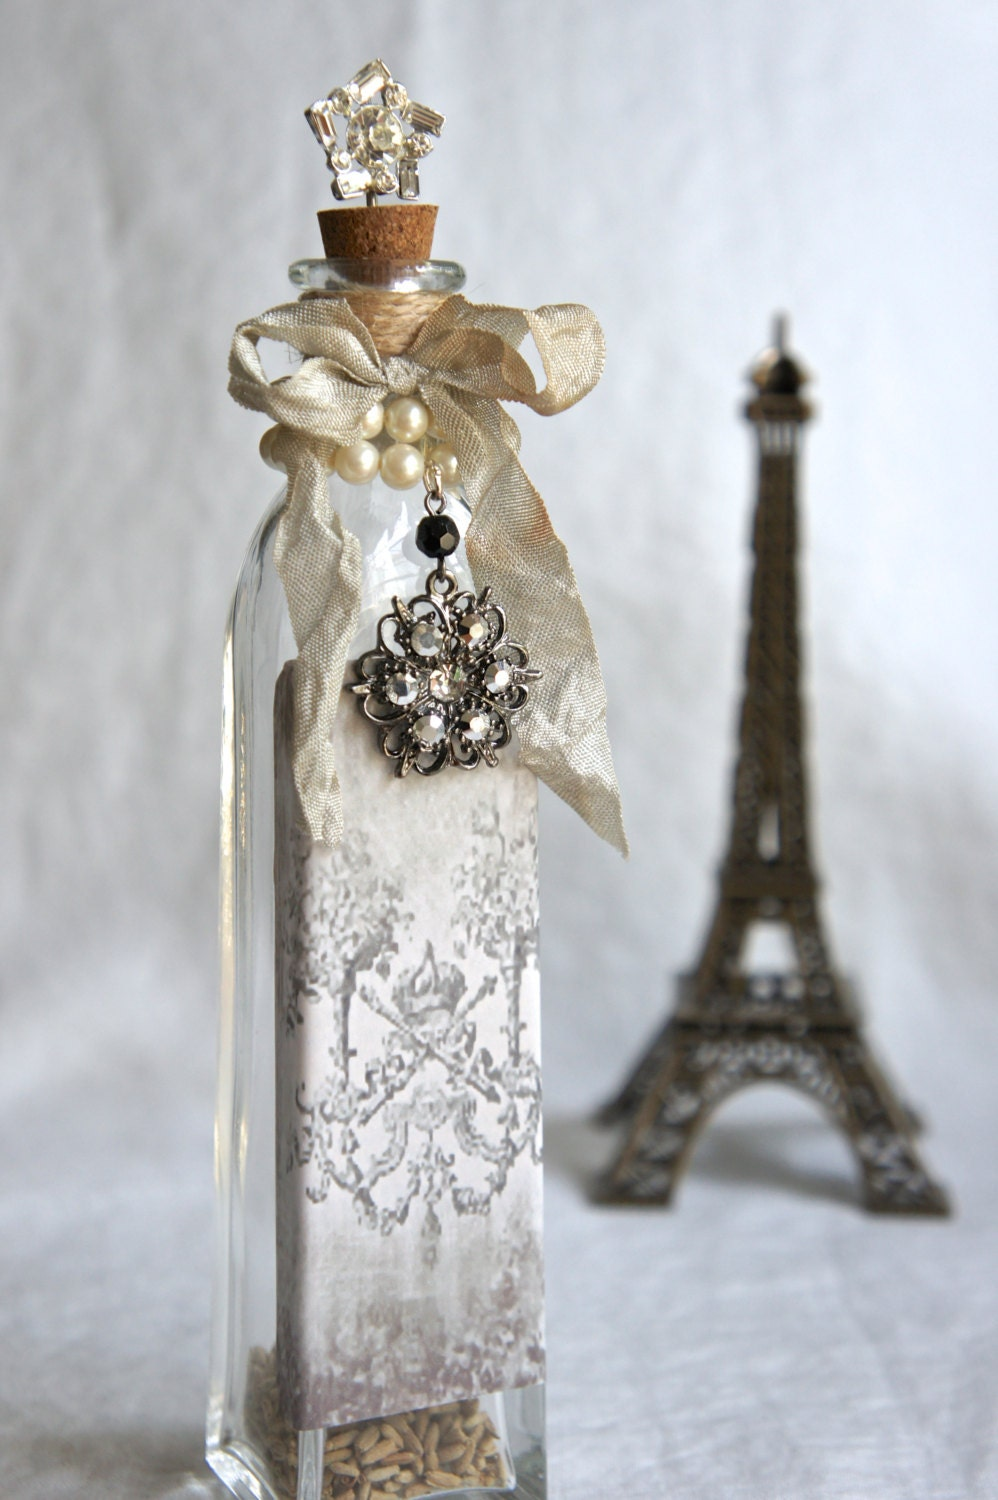 Decorative Glass Bottle With Vintage French Label Vintage. Furniture Ideas For Living Room. Cheap Vintage Decor. Home Decor Store. Decorative Benches. Decorative Garden Stake. Hotels With Jacuzzi In Room St Louis. Beach Kitchen Decor. How To Decorate A Wedding Table